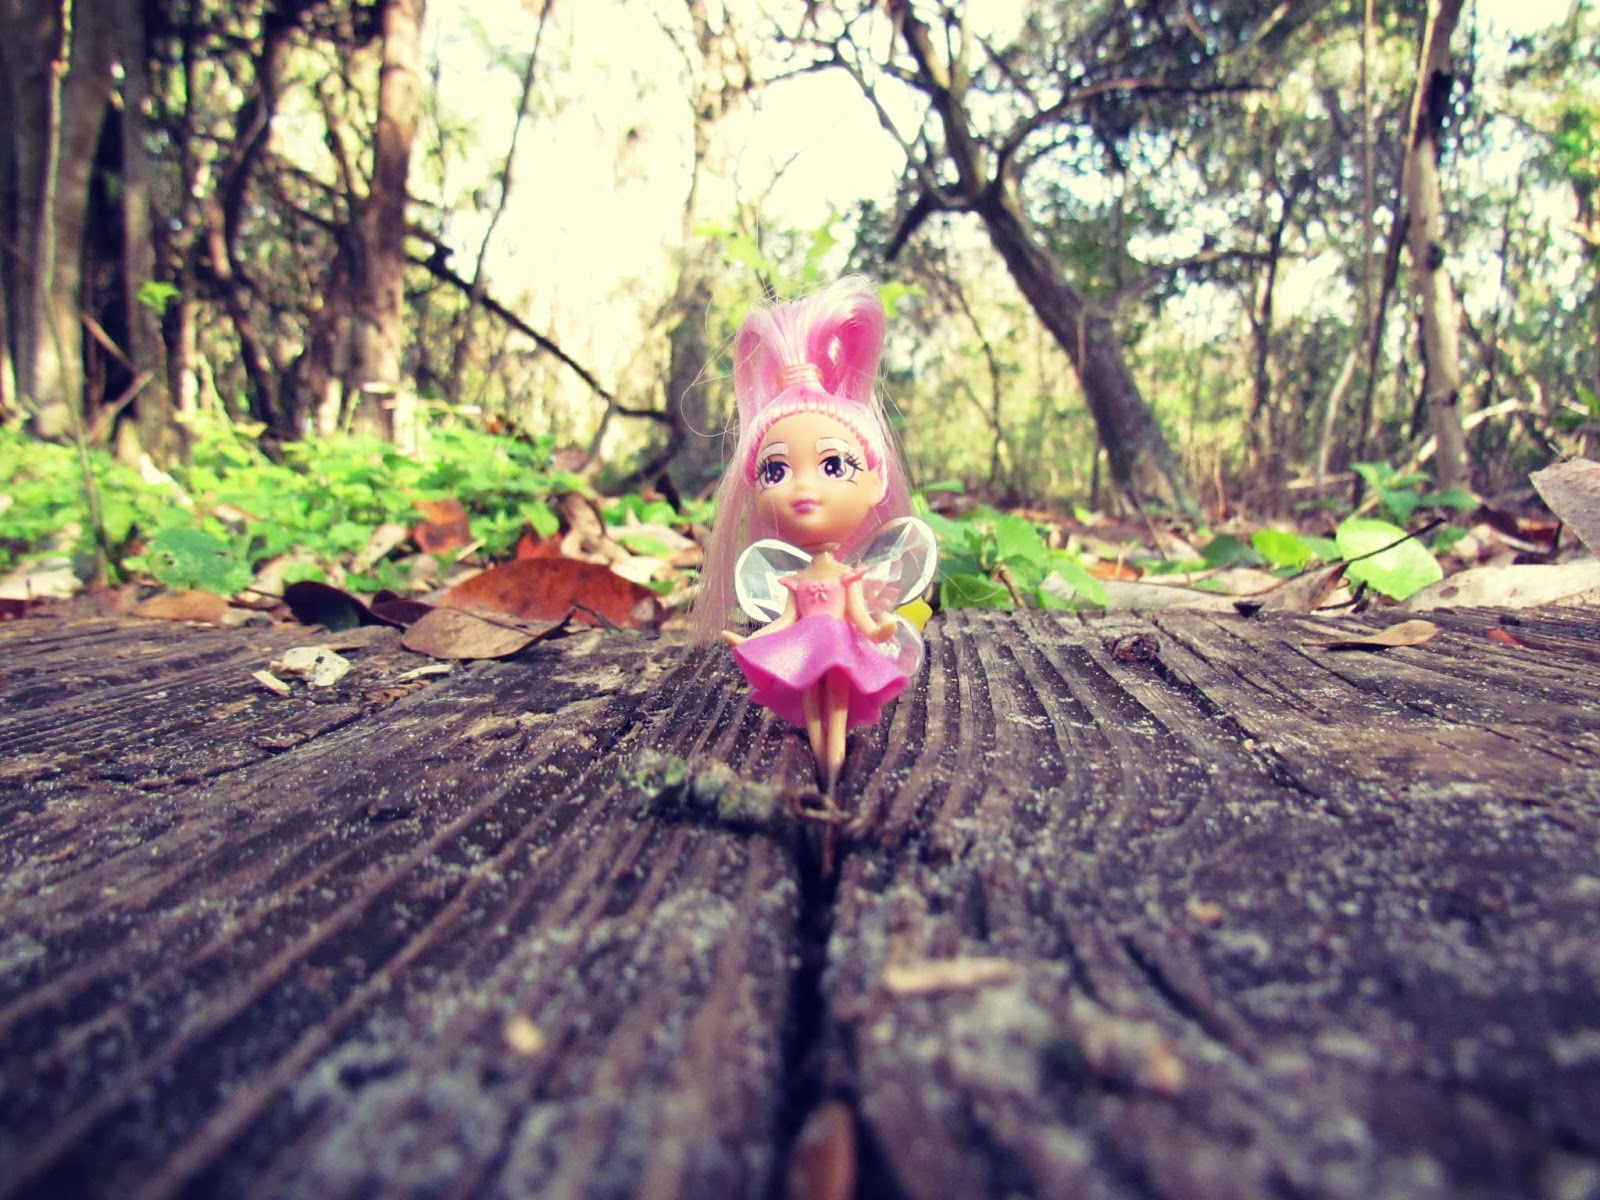 A pink toy fairy in a woodland setting in nature + Florida living lifestyle